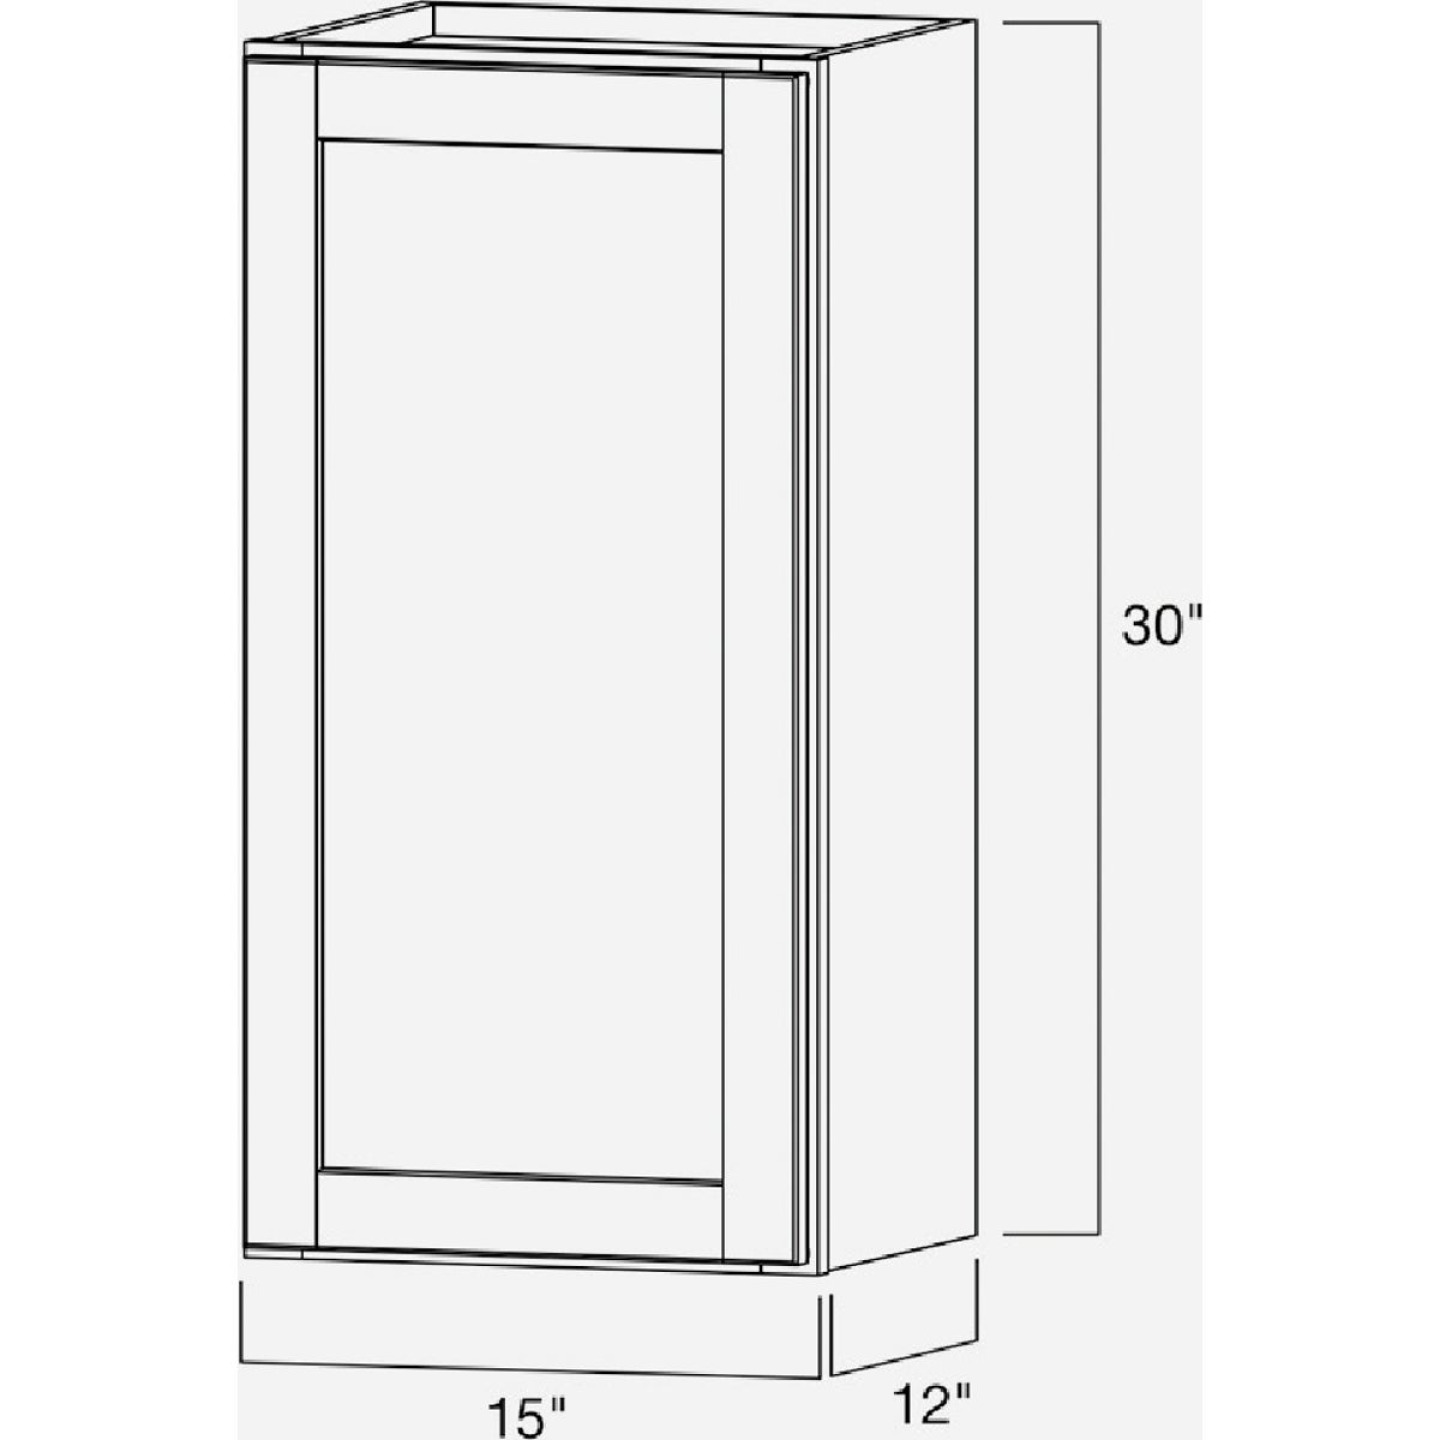 Continental Cabinets Andover Shaker 15 In. W x 30 In. H x 12 In. D White Thermofoil Wall Kitchen Cabinet Image 5